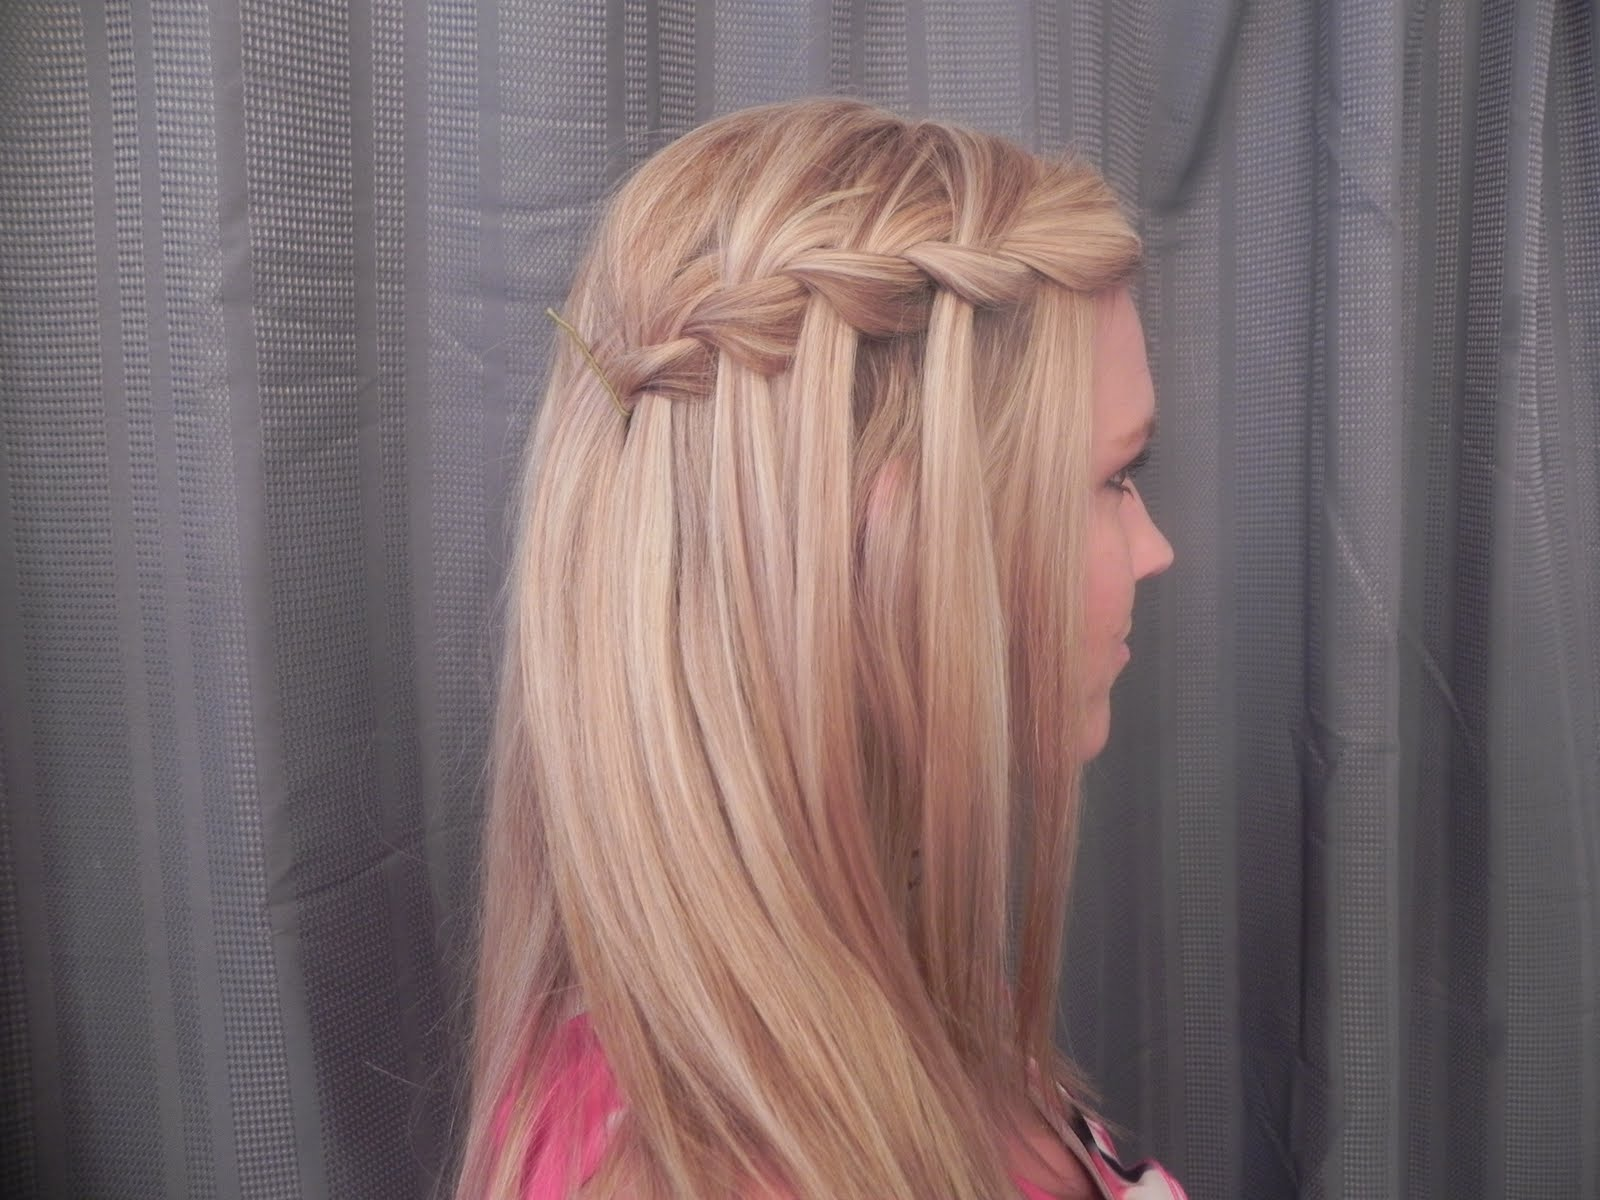 quot  She posted about a hair style called the quot waterfall braid. 1600 x 1200.Hairstyles Braids Children